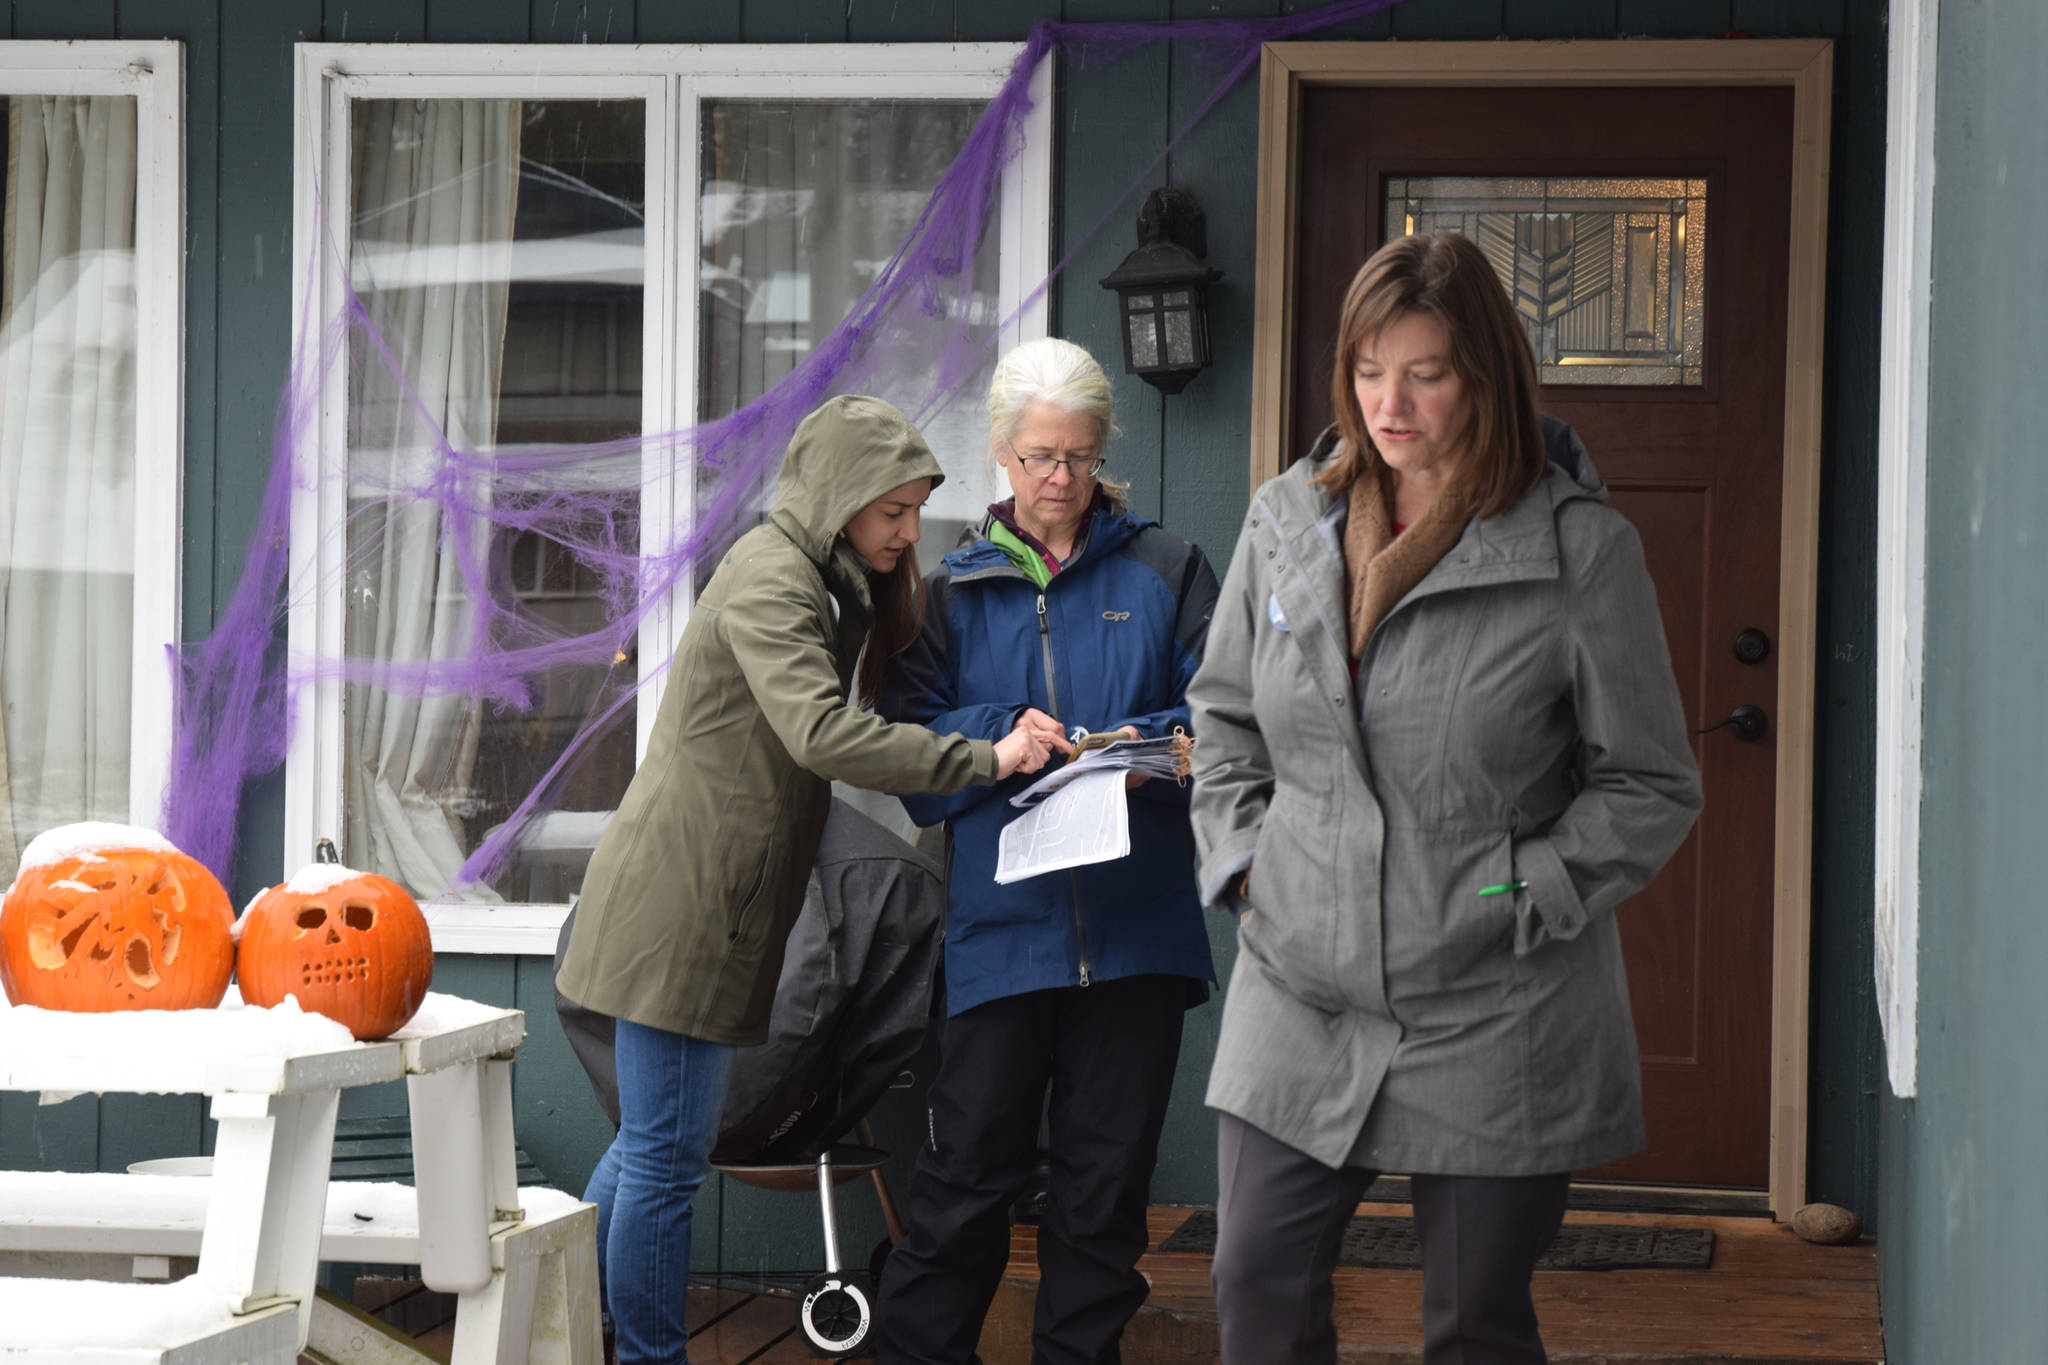 Alyse Galvin, Alaska's independent candidate for U.S. House of Representatives, leaves a home after talking with its residents Sunday, Nov. 4, 2018 in the Mendenhall Valley. Galvin was in Juneau for a final campaign stop ahead of the election. (James Brooks | Juneau Empire)